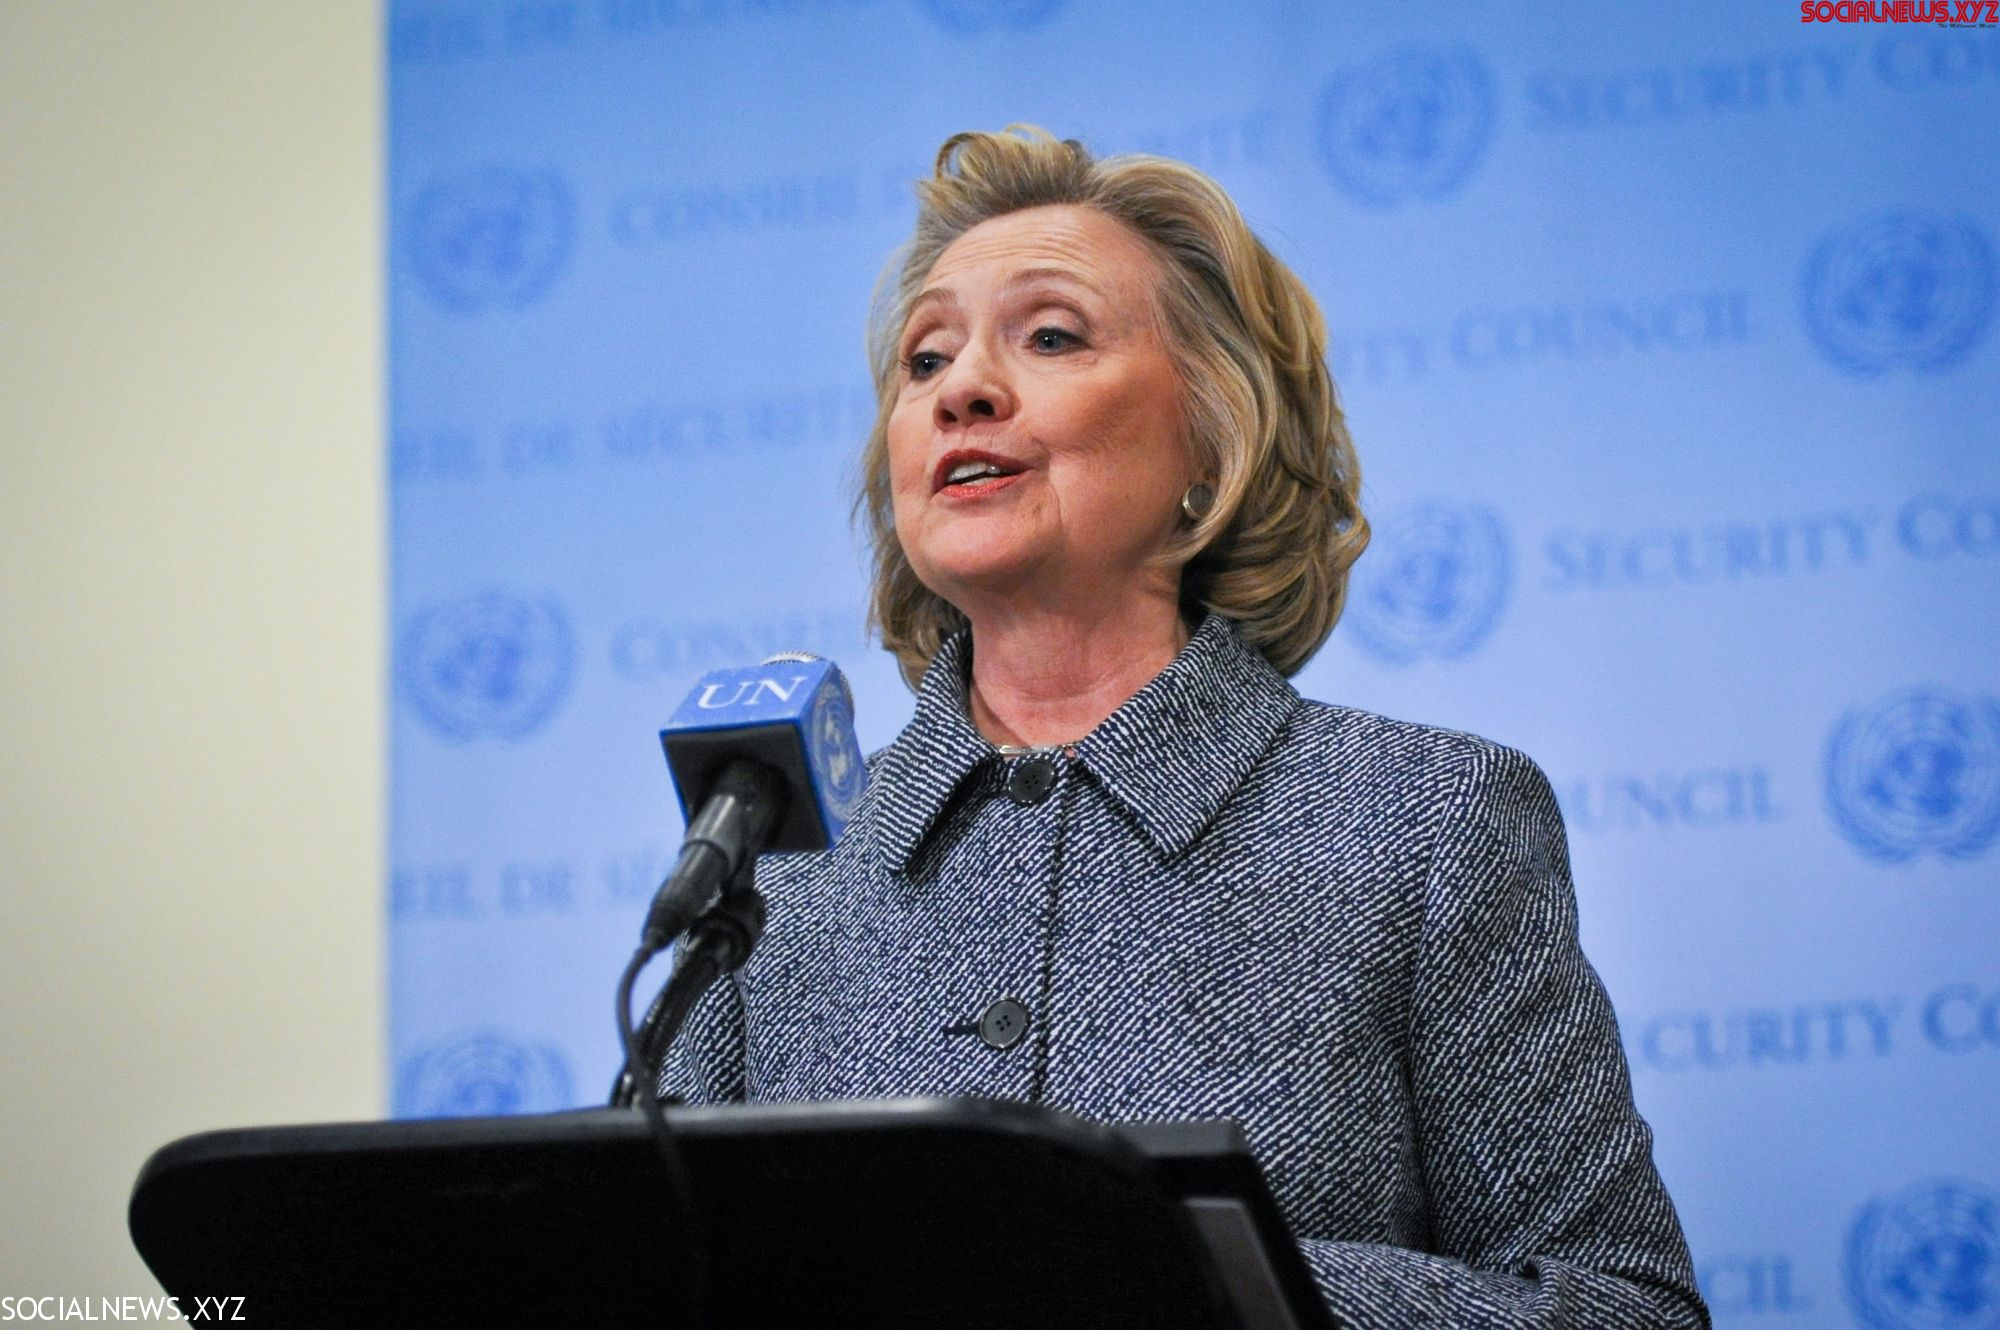 Keep Up 'resistance and persistence': Hillary